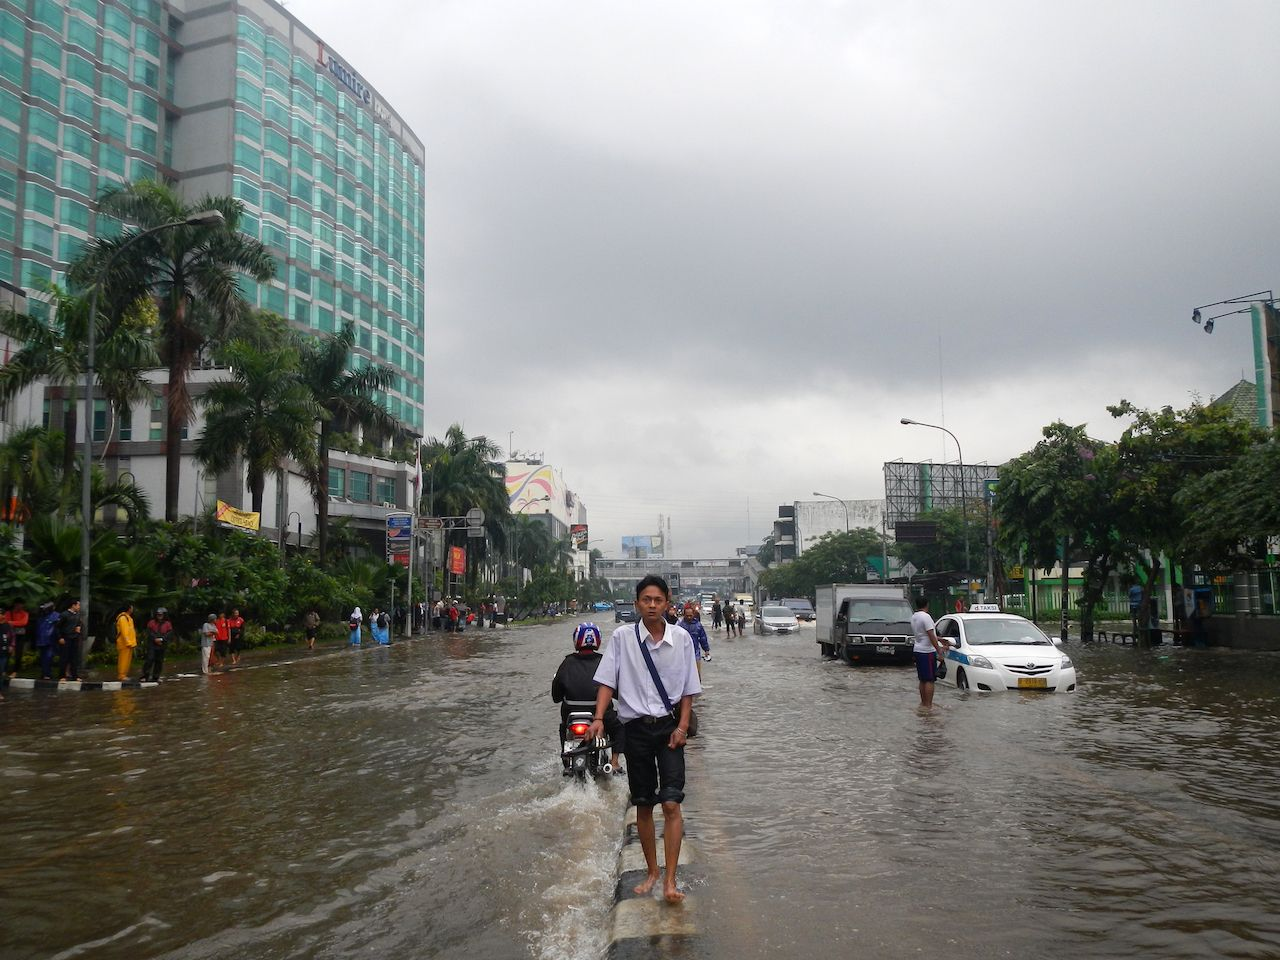 Flooded city streets in Jakarta, Indonesia